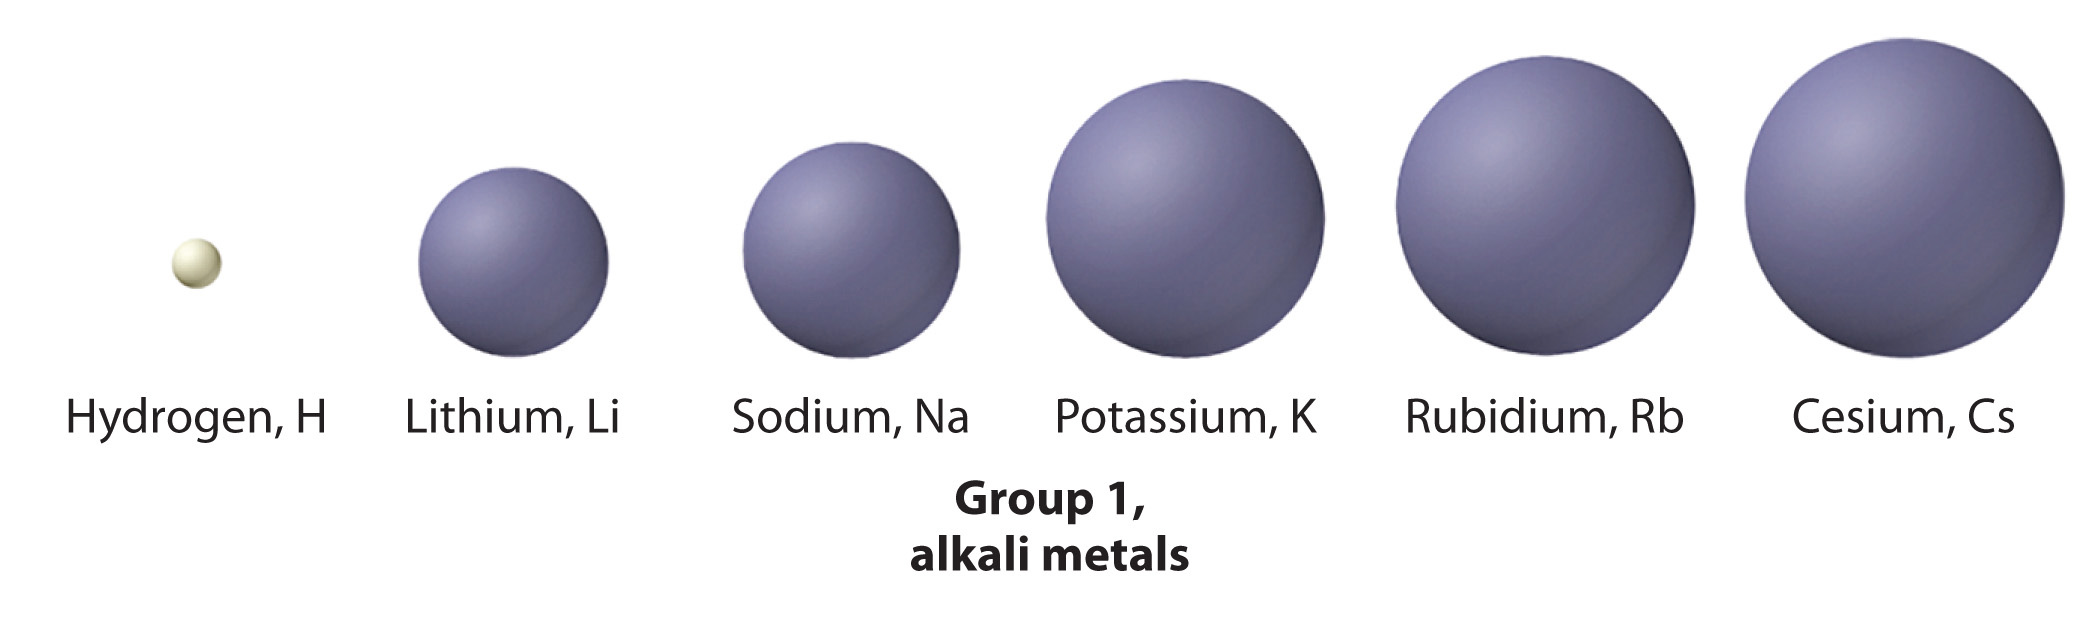 S11 The Periodic Table And Periodi on The Properties Of Atoms And Periodic Table